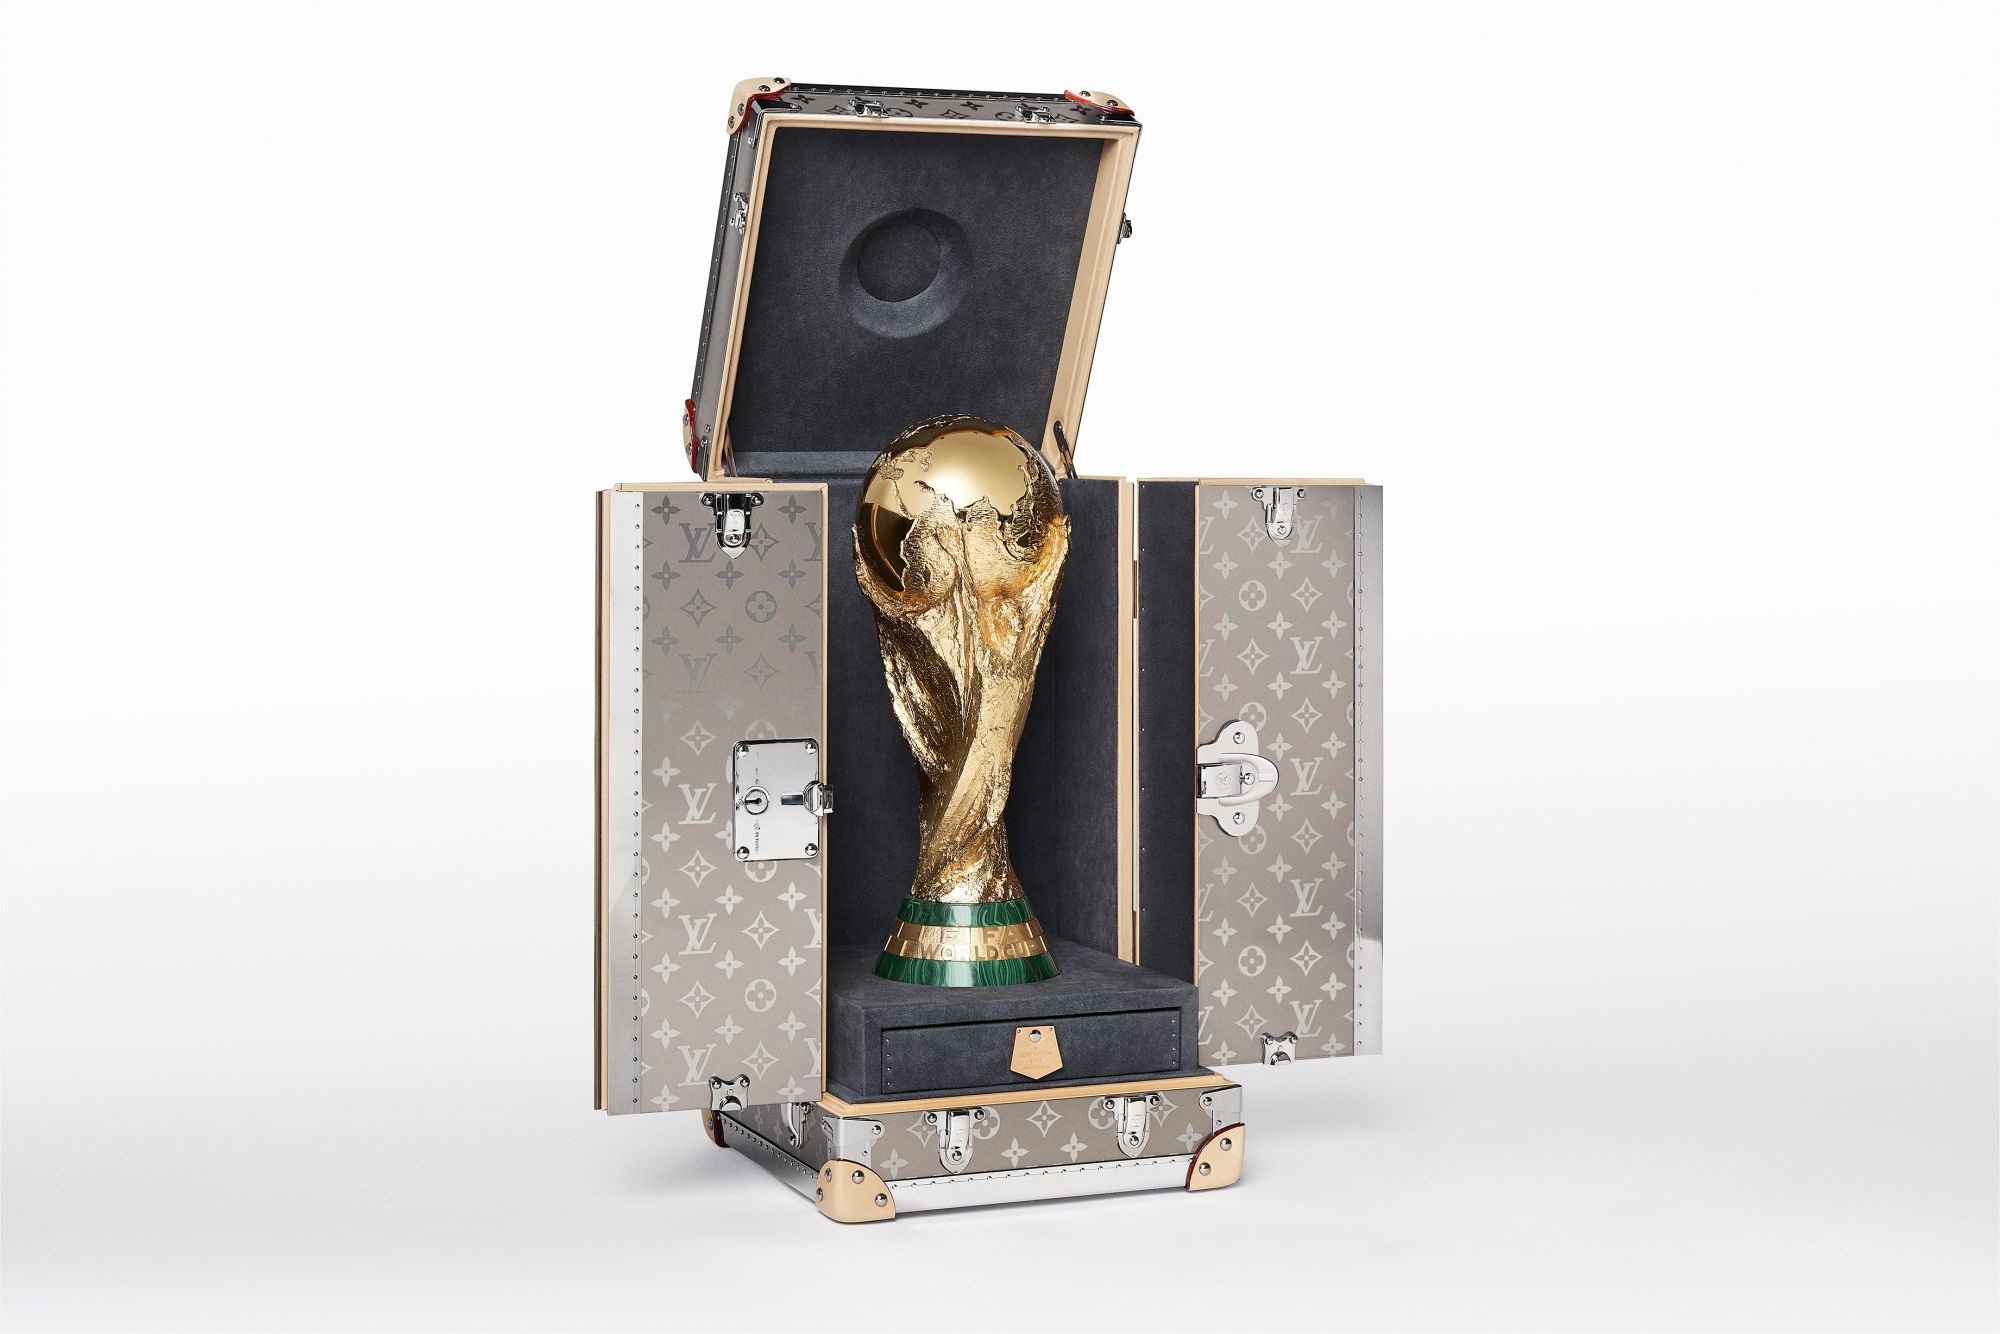 Collector's Item: Louis Vuitton's 2018 FIFA World Cup Trophy Trunk